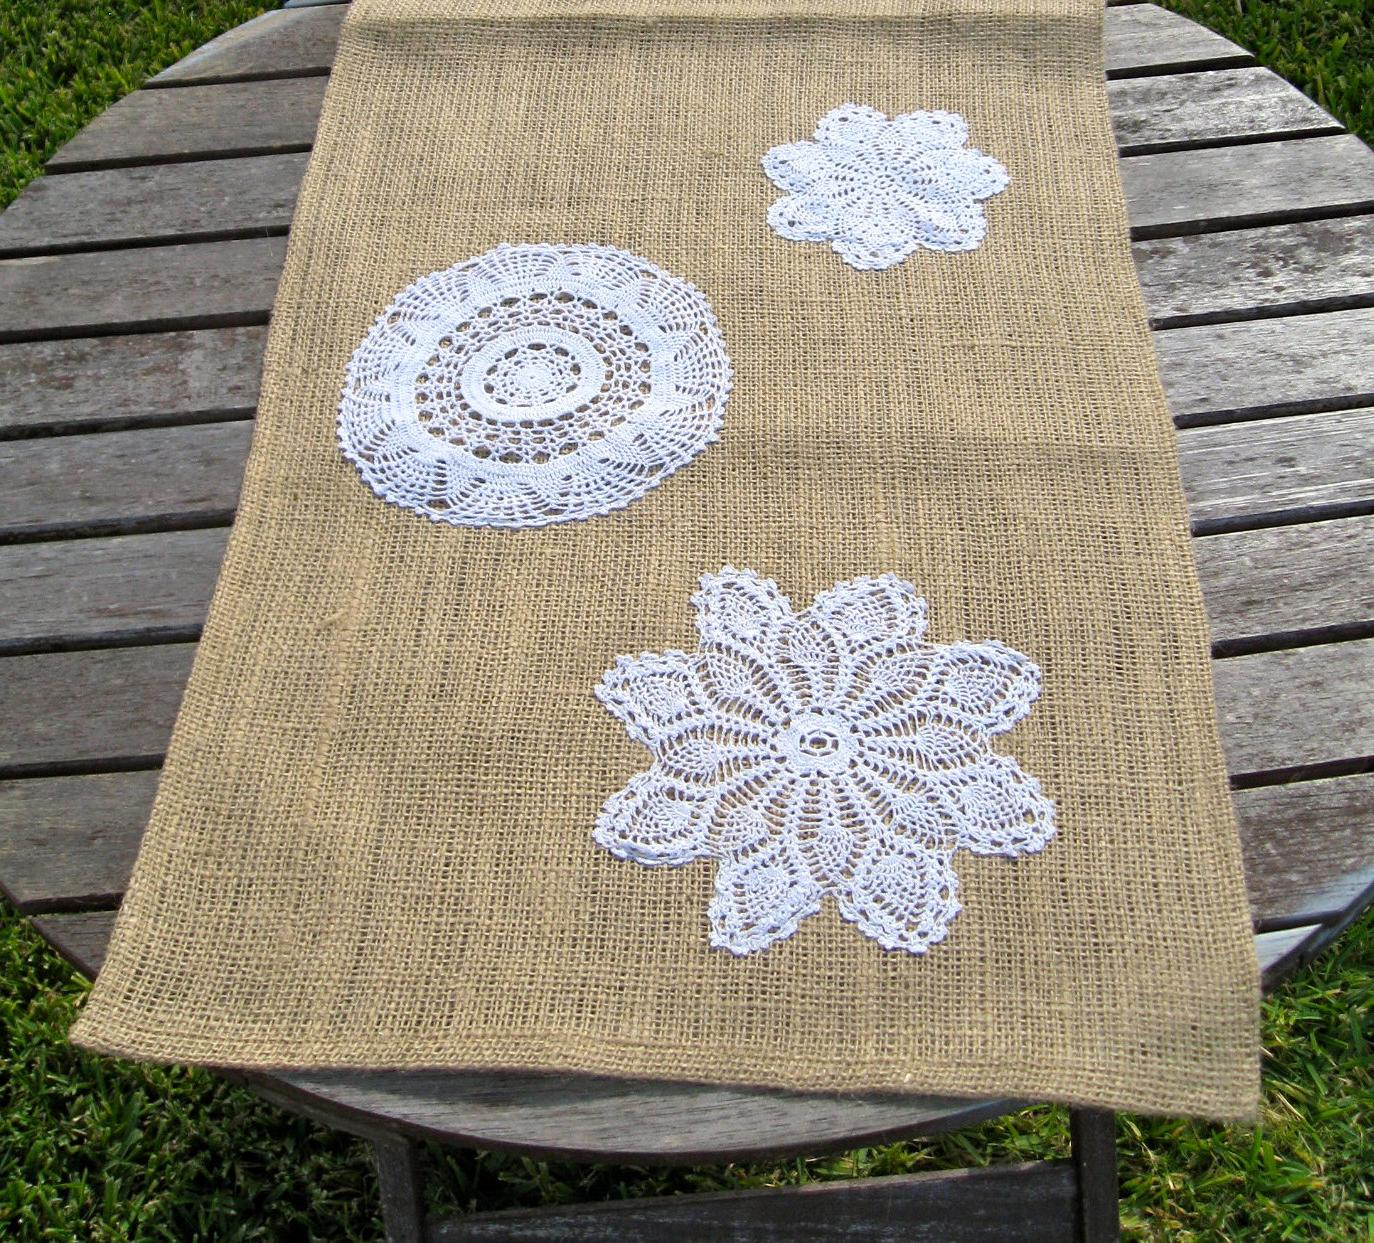 SALE-Burlap Table runner with Doilies-Ready to Ship. From JustKateEtc